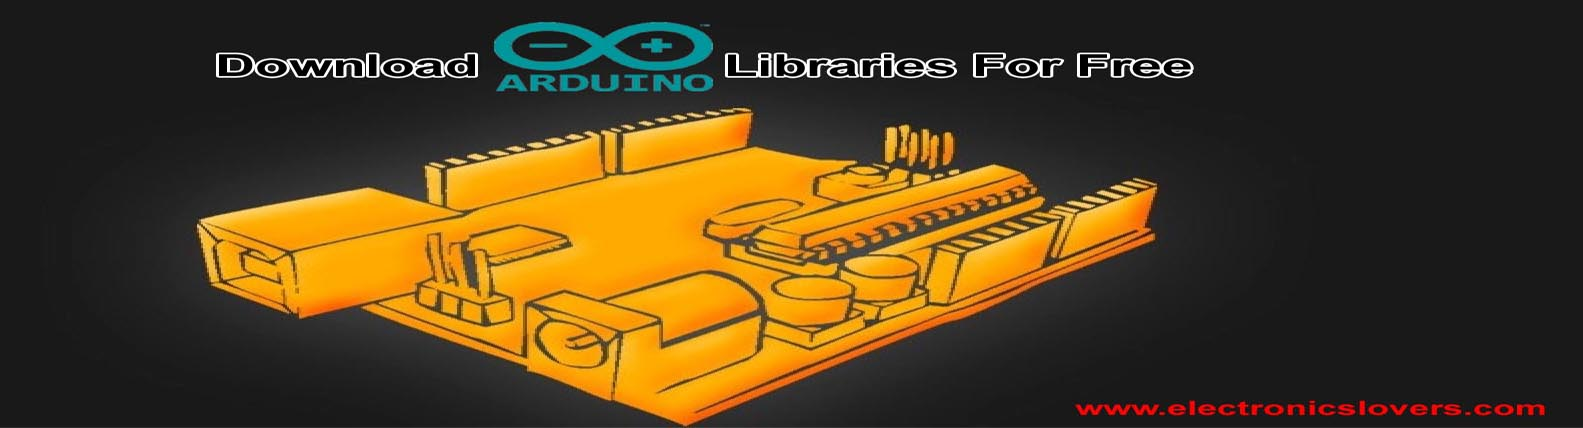 Download Arduino Libraries For Free - Electronics Lovers